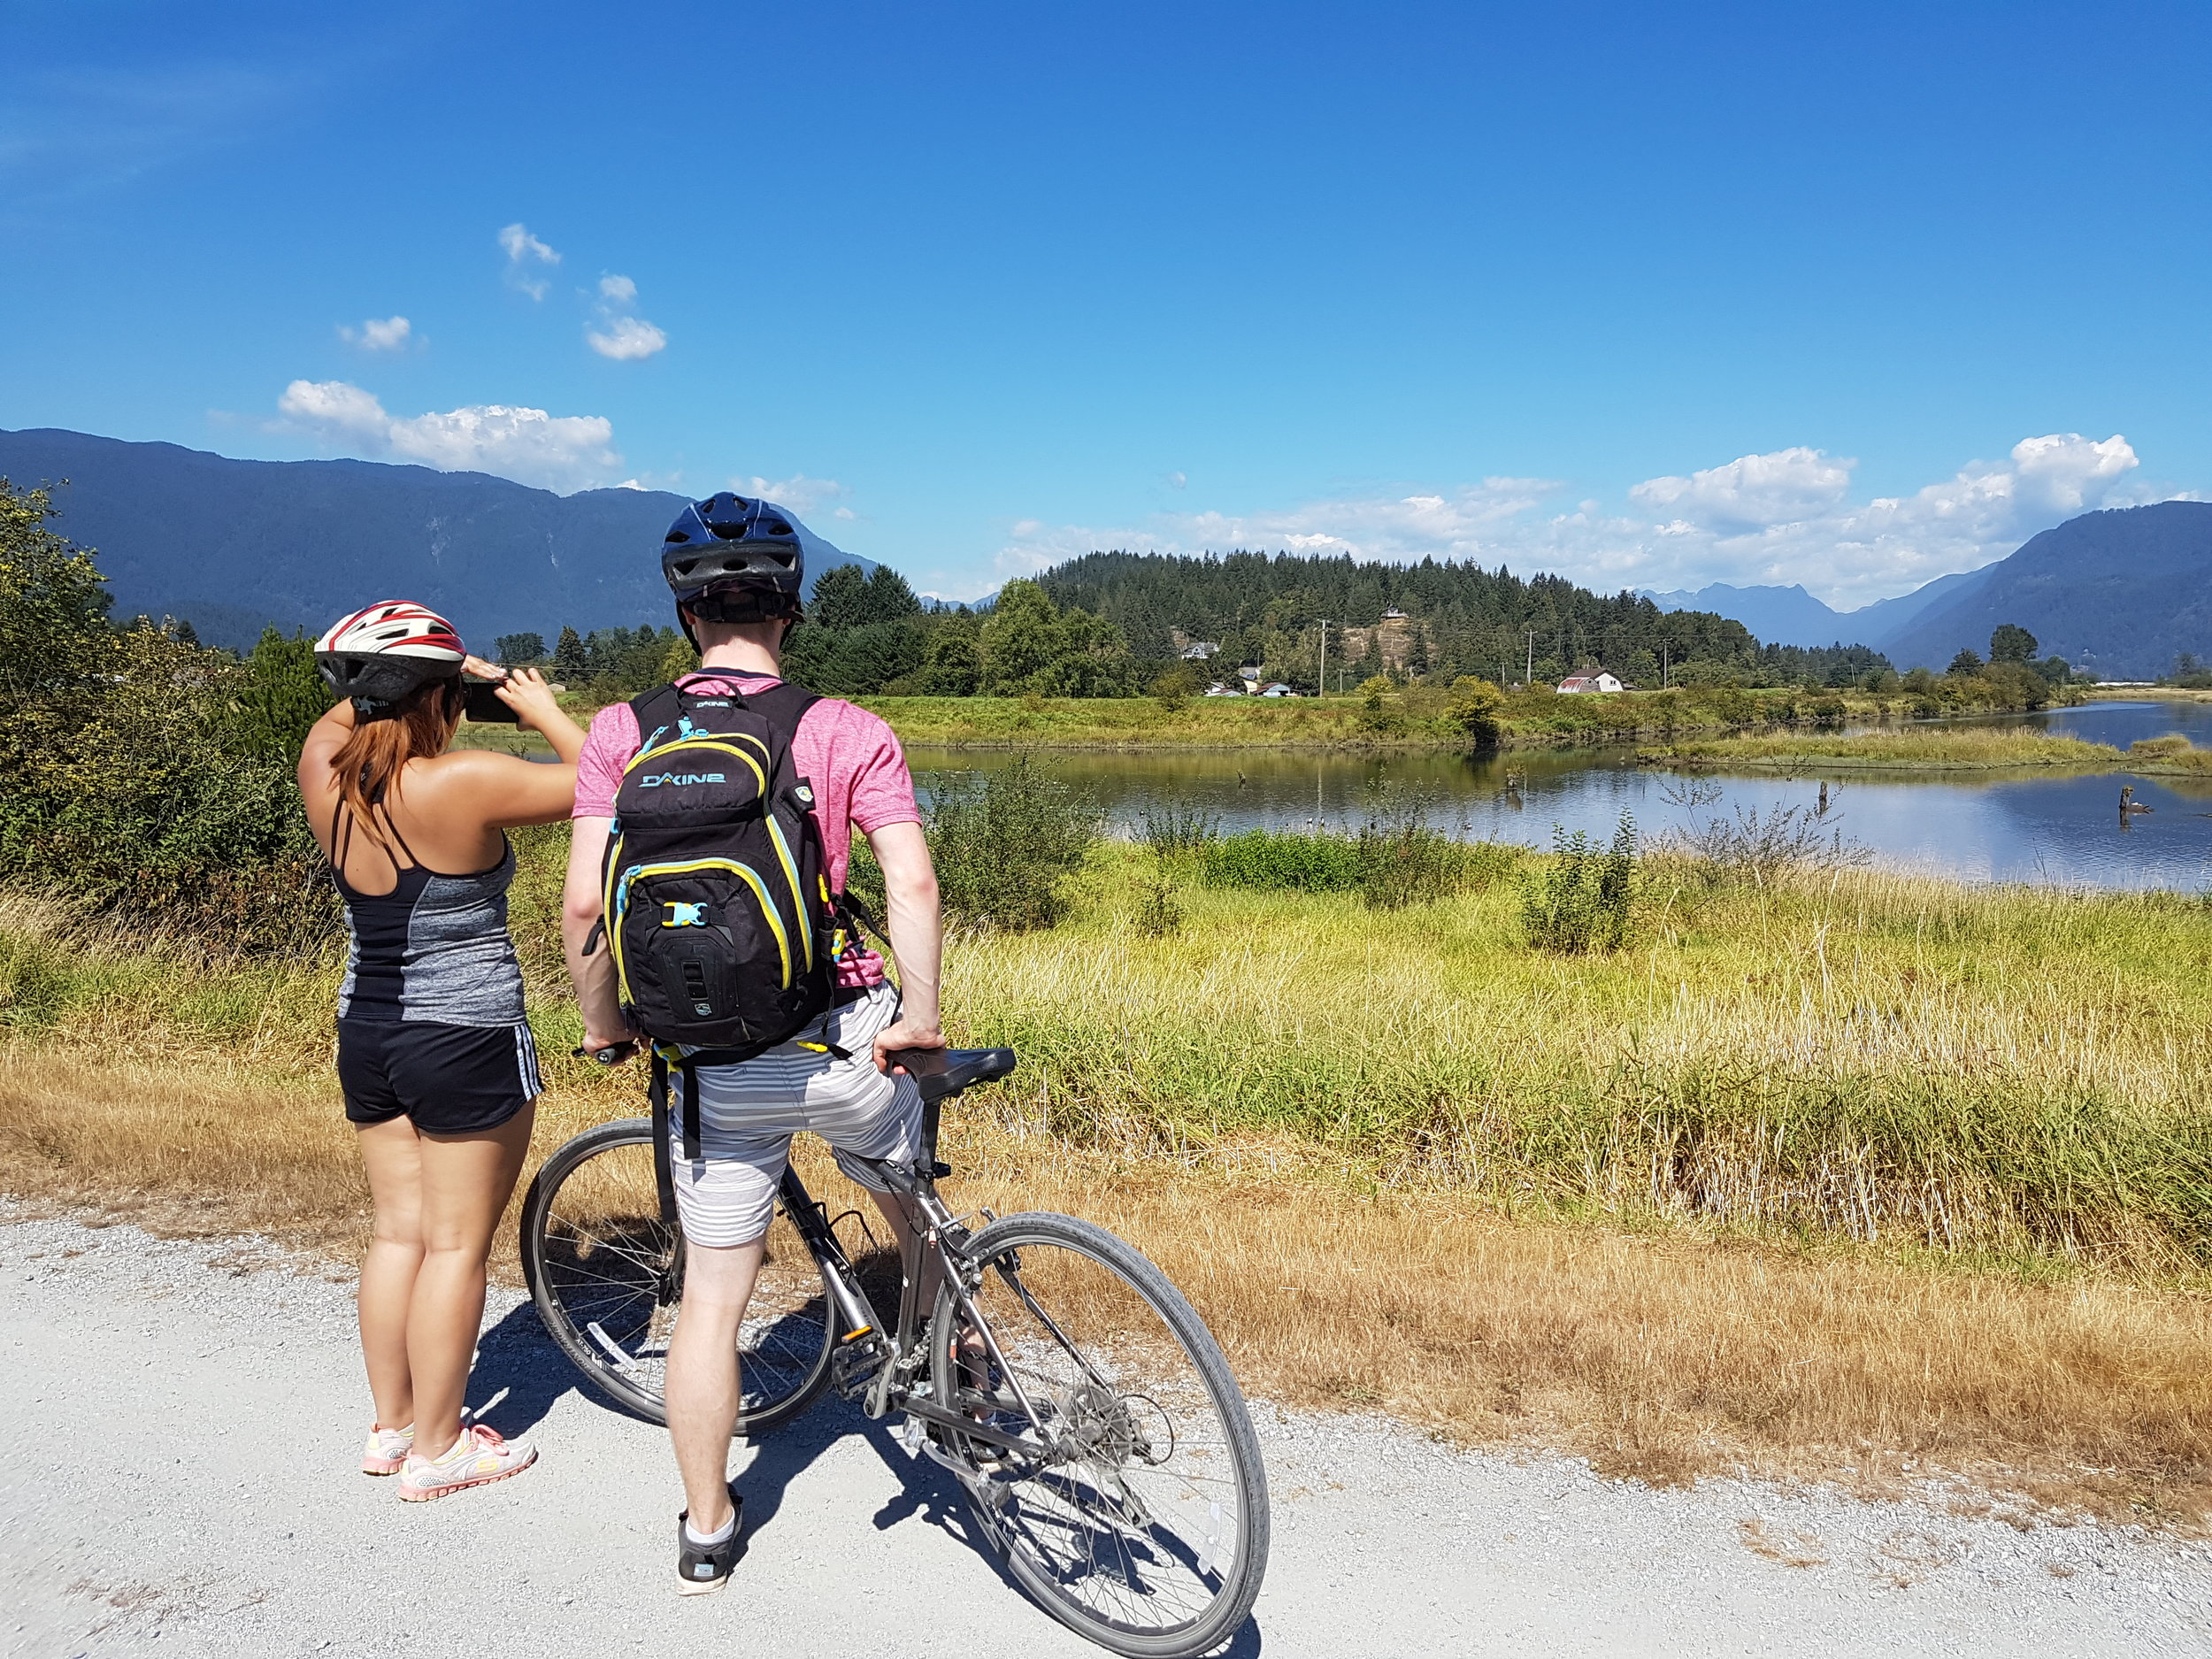 Taking it all in at Pitt Meadows, B.C.